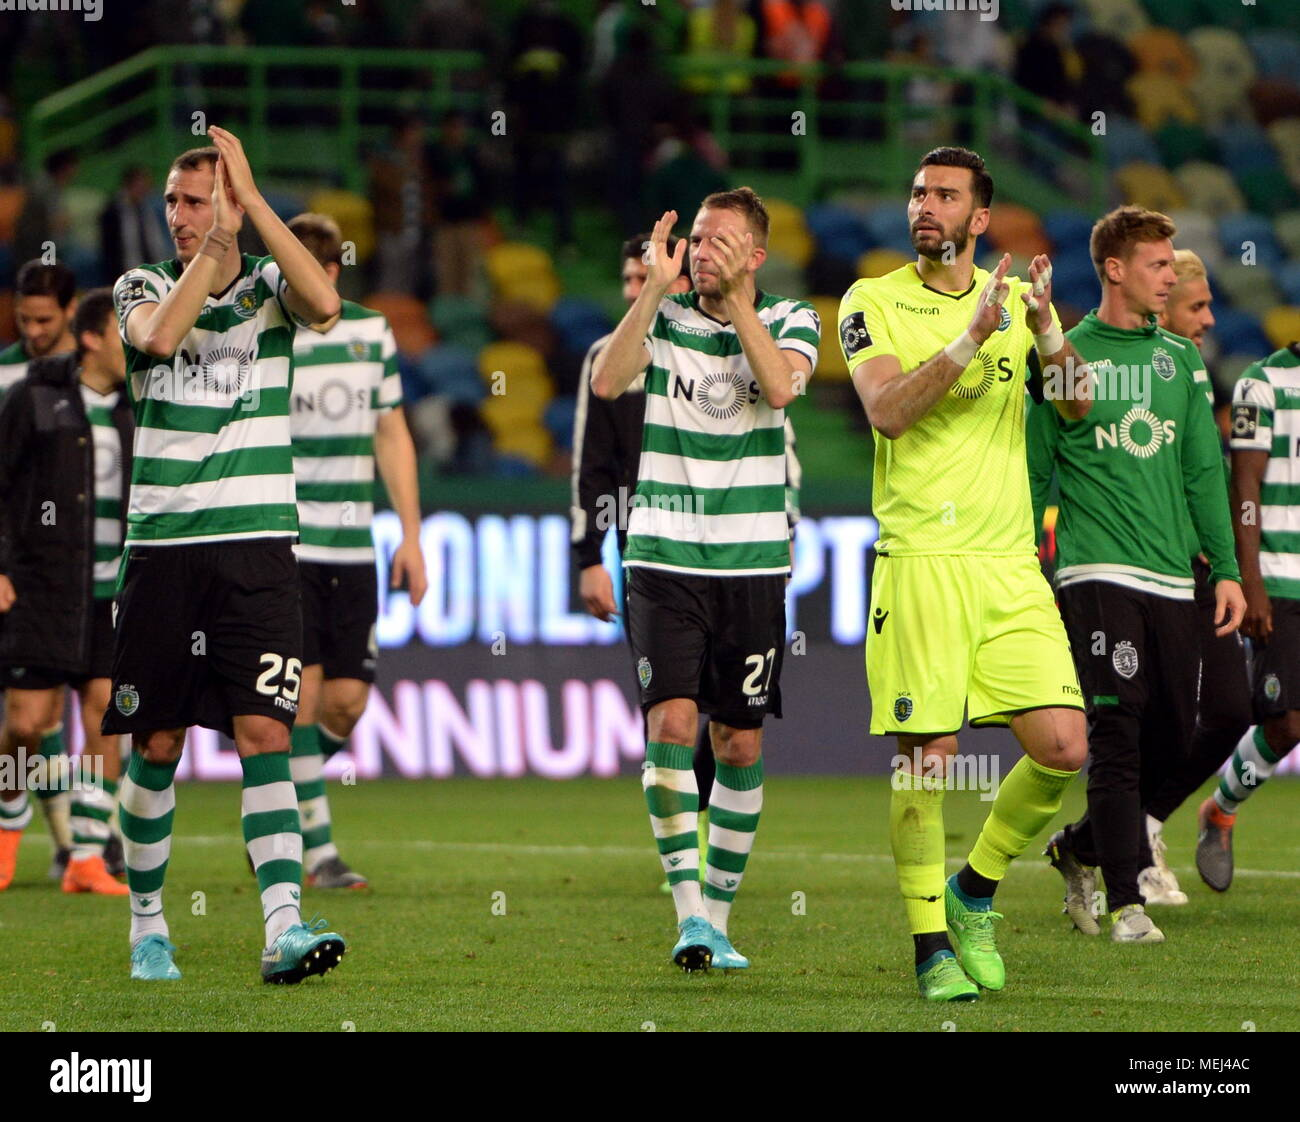 Lisbon portugal 22nd apr 2018 players of sporting greet the lisbon portugal 22nd apr 2018 players of sporting greet the spectators after portuguese league soccer match between sporting cp and boavista fc in m4hsunfo